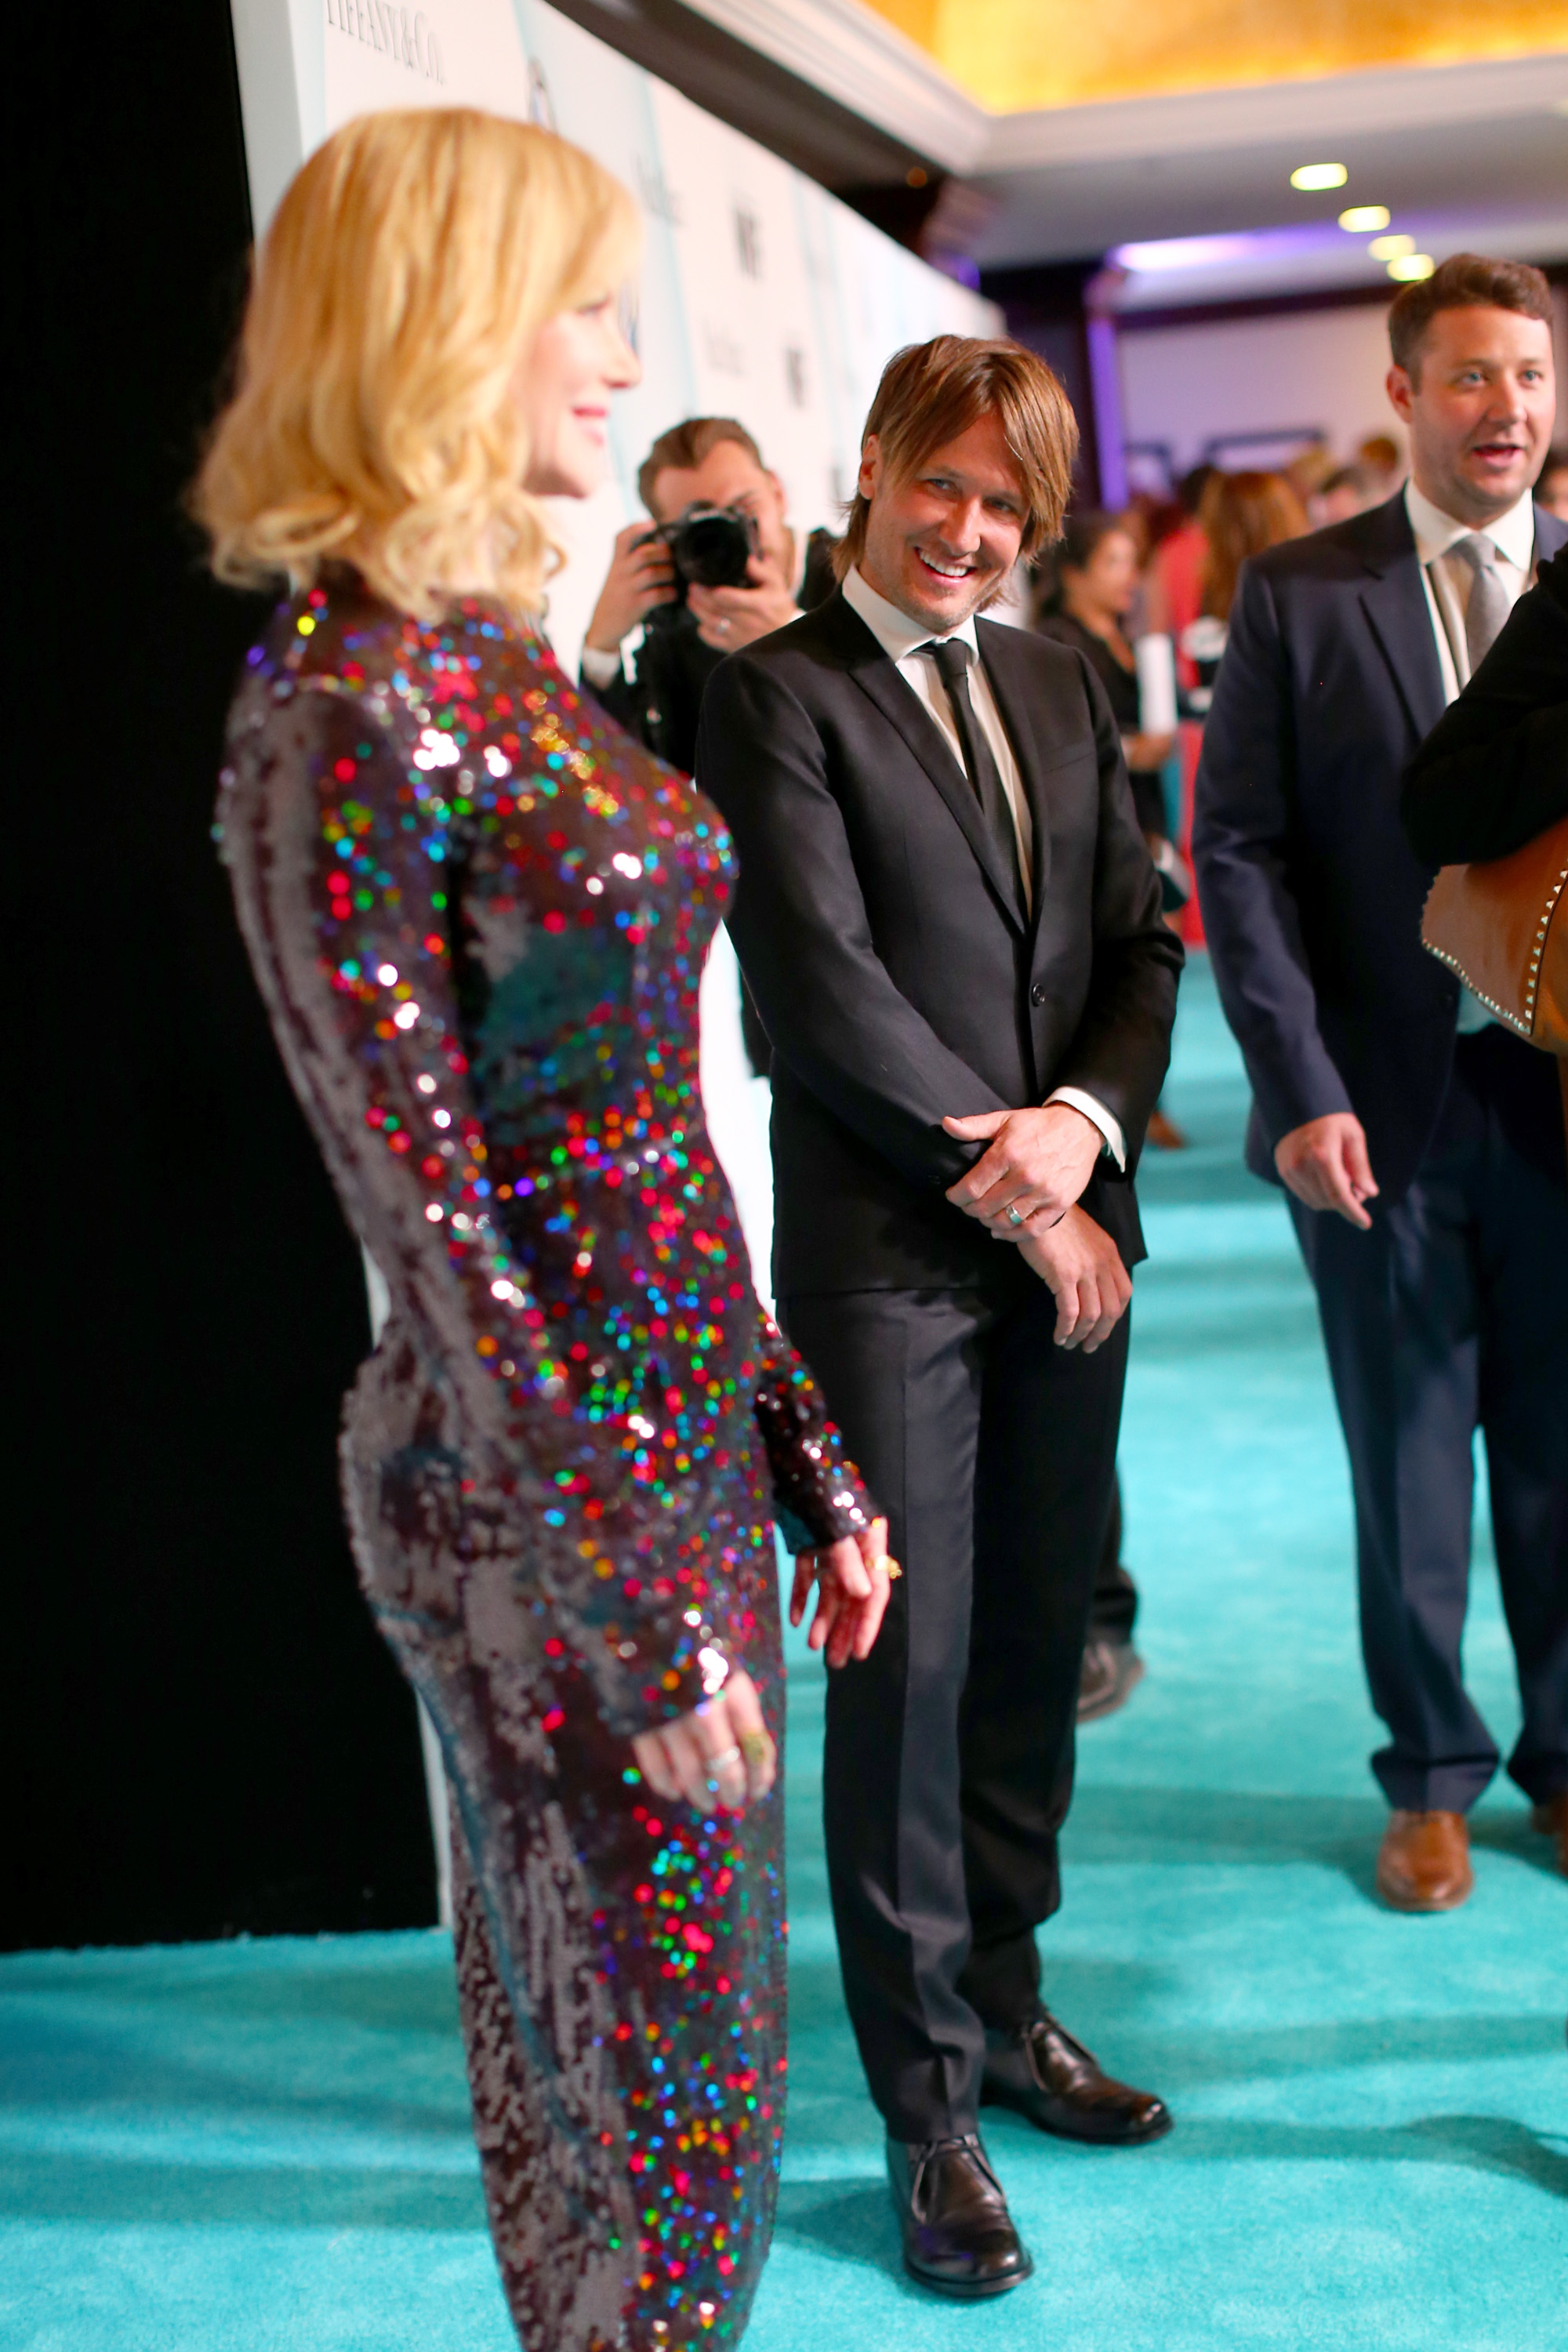 CENTURY CITY, CA - JUNE 16: Honoree Nicole Kidman (L) and recording artist Keith Urban attend the Women In Film 2015 Crystal + Lucy Awards Presented by Max Mara, BMW of North America, and Tiffany & Co. at the Hyatt Regency Century Plaza on June 16, 2015 in Century City, California.  (Photo by Mark Davis/Getty Images for Women in Film)